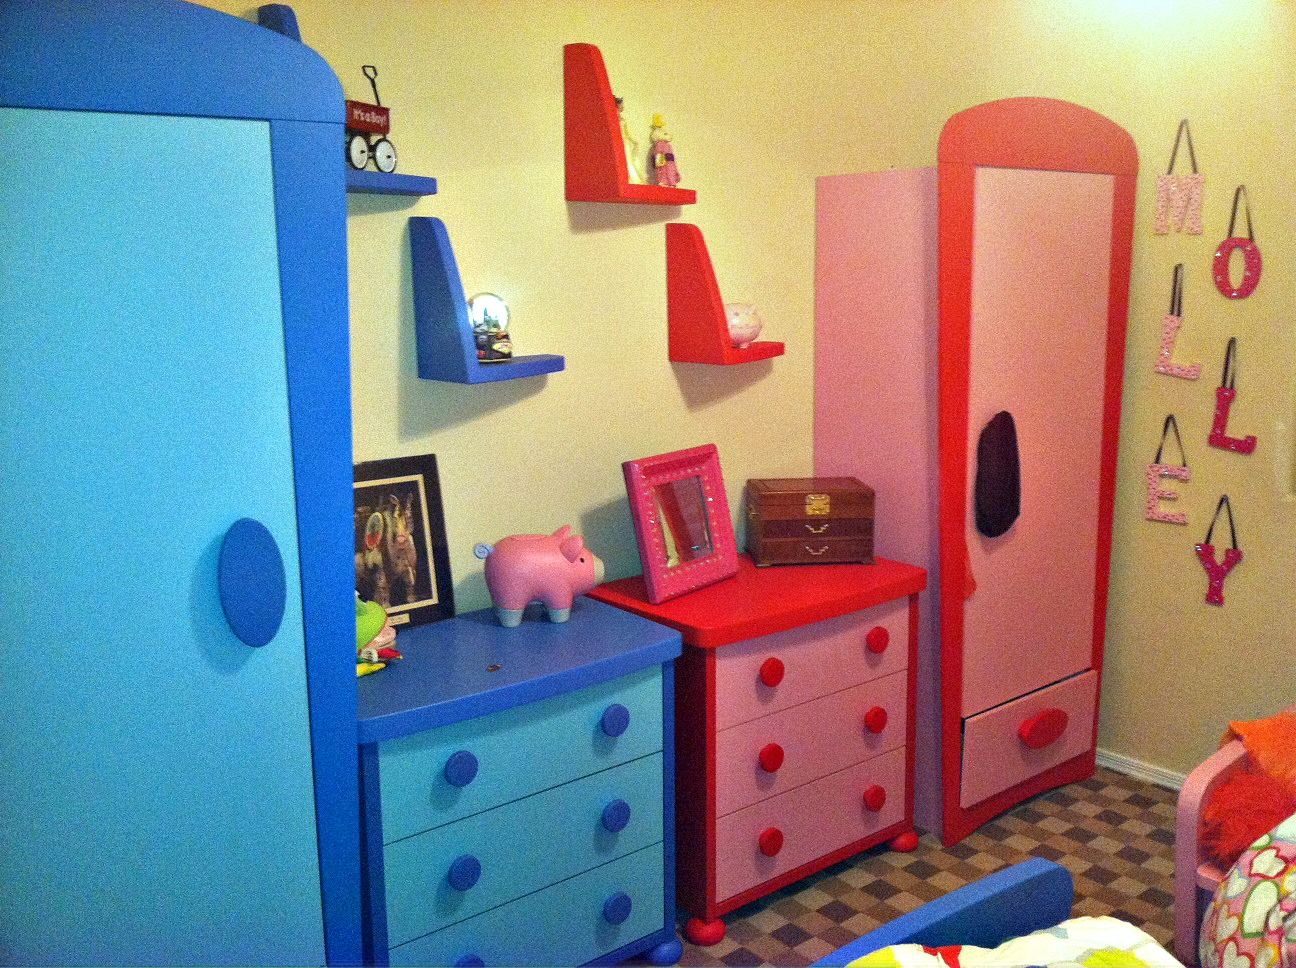 Stunning IKEA Kids Room Reflects Cheerful Character with Colorful ...